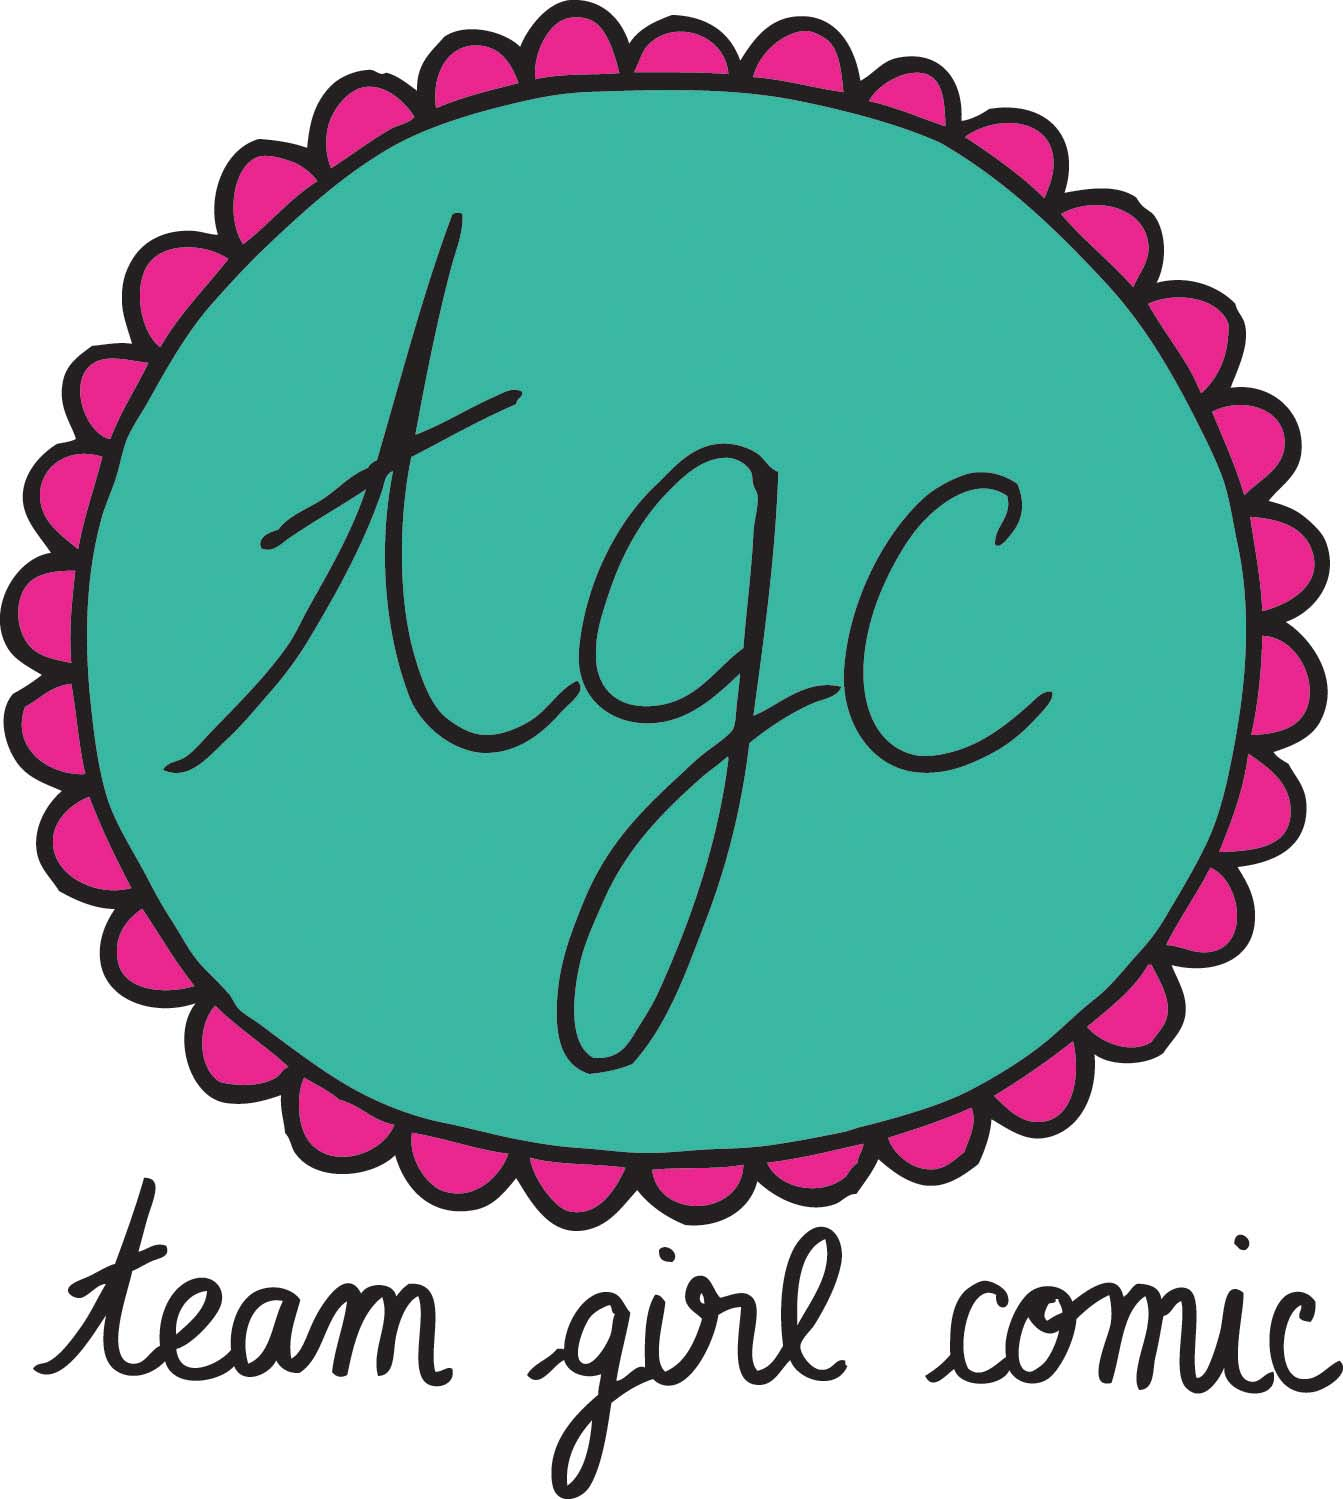 Team Girl Comic logo